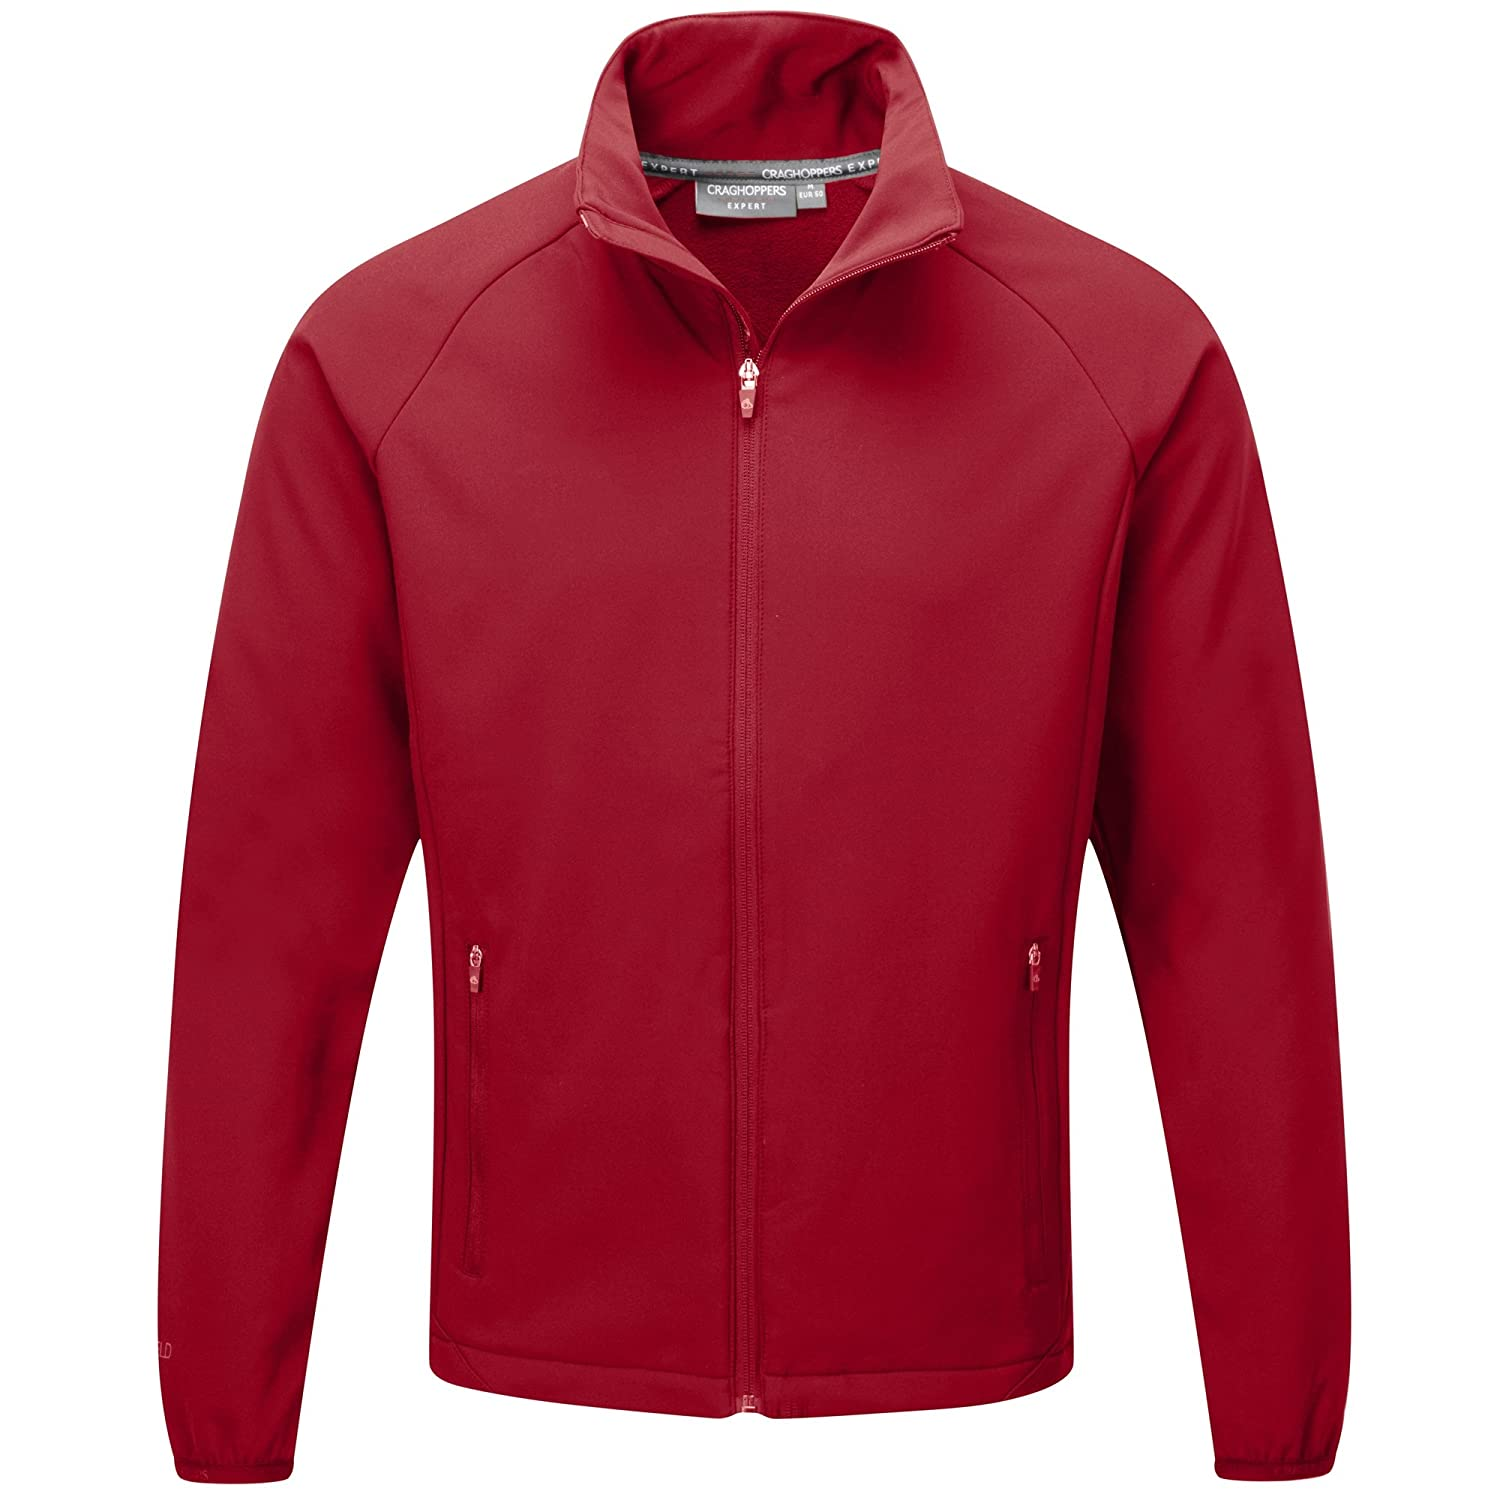 Craghoppers Mens Turnpike Soft Shell Jacket